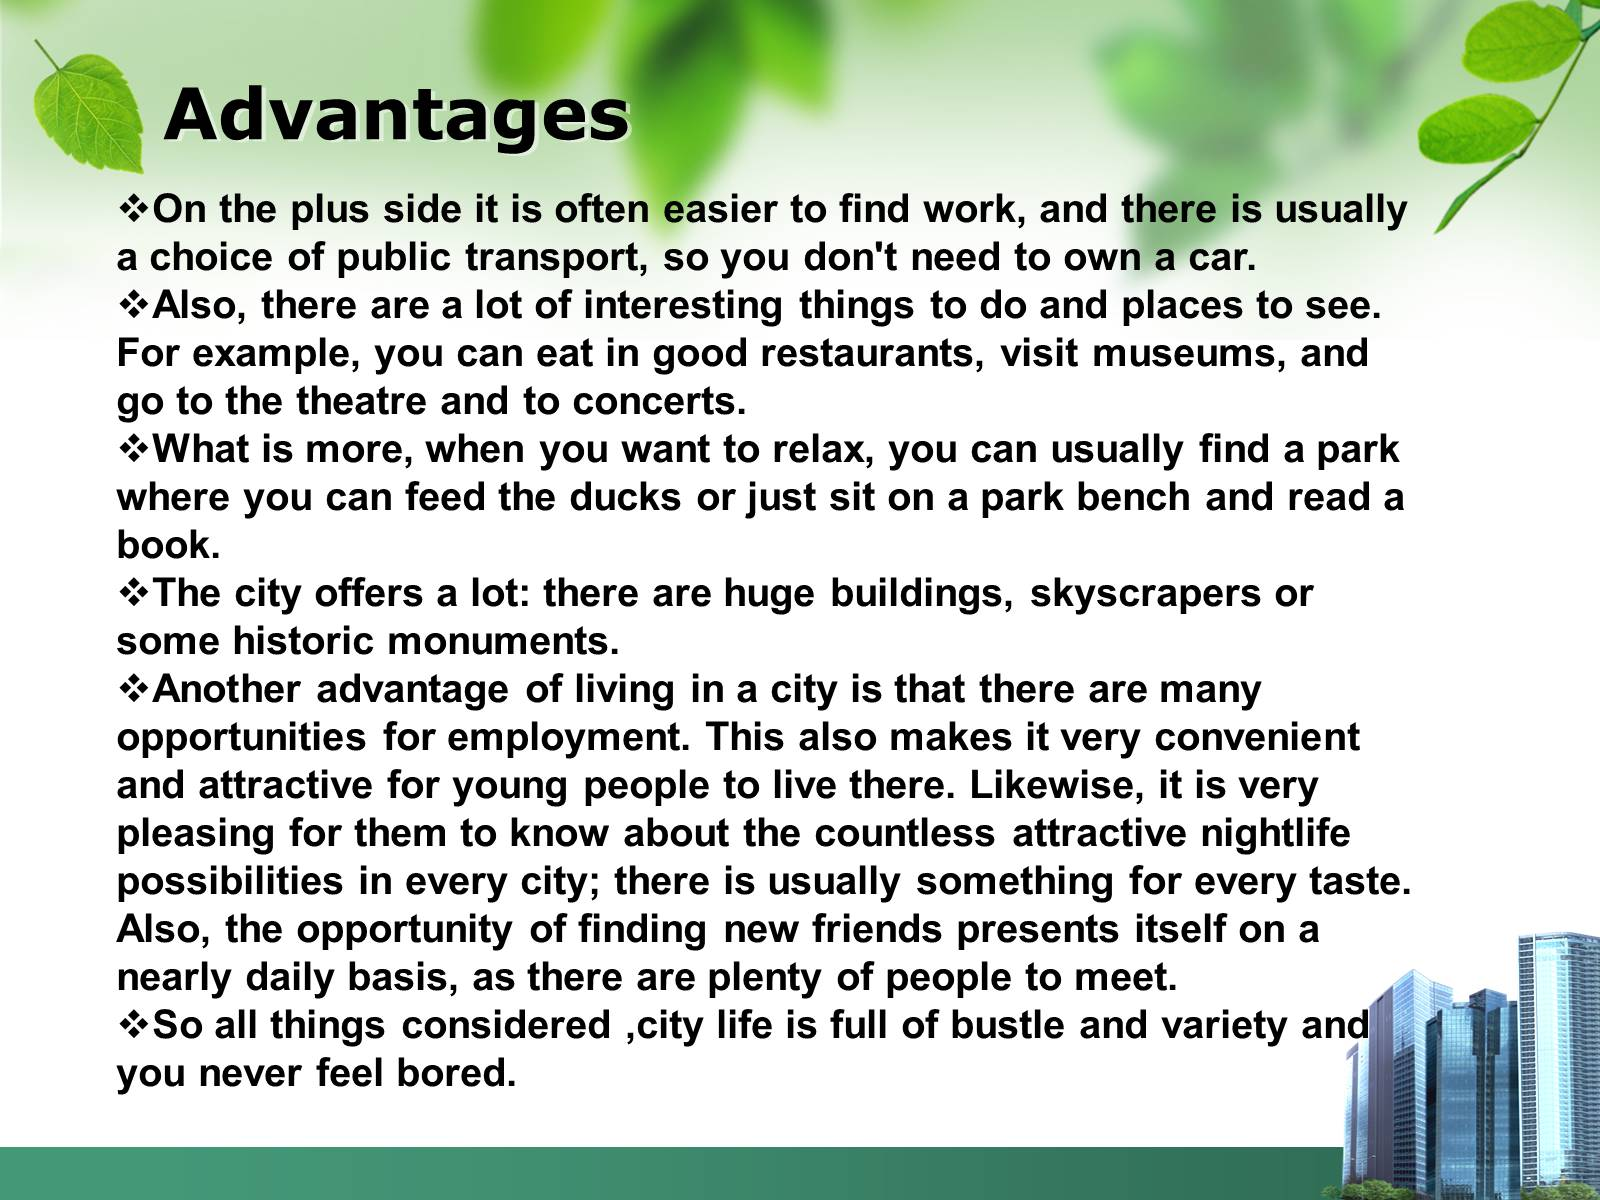 disadvantages of city life essays